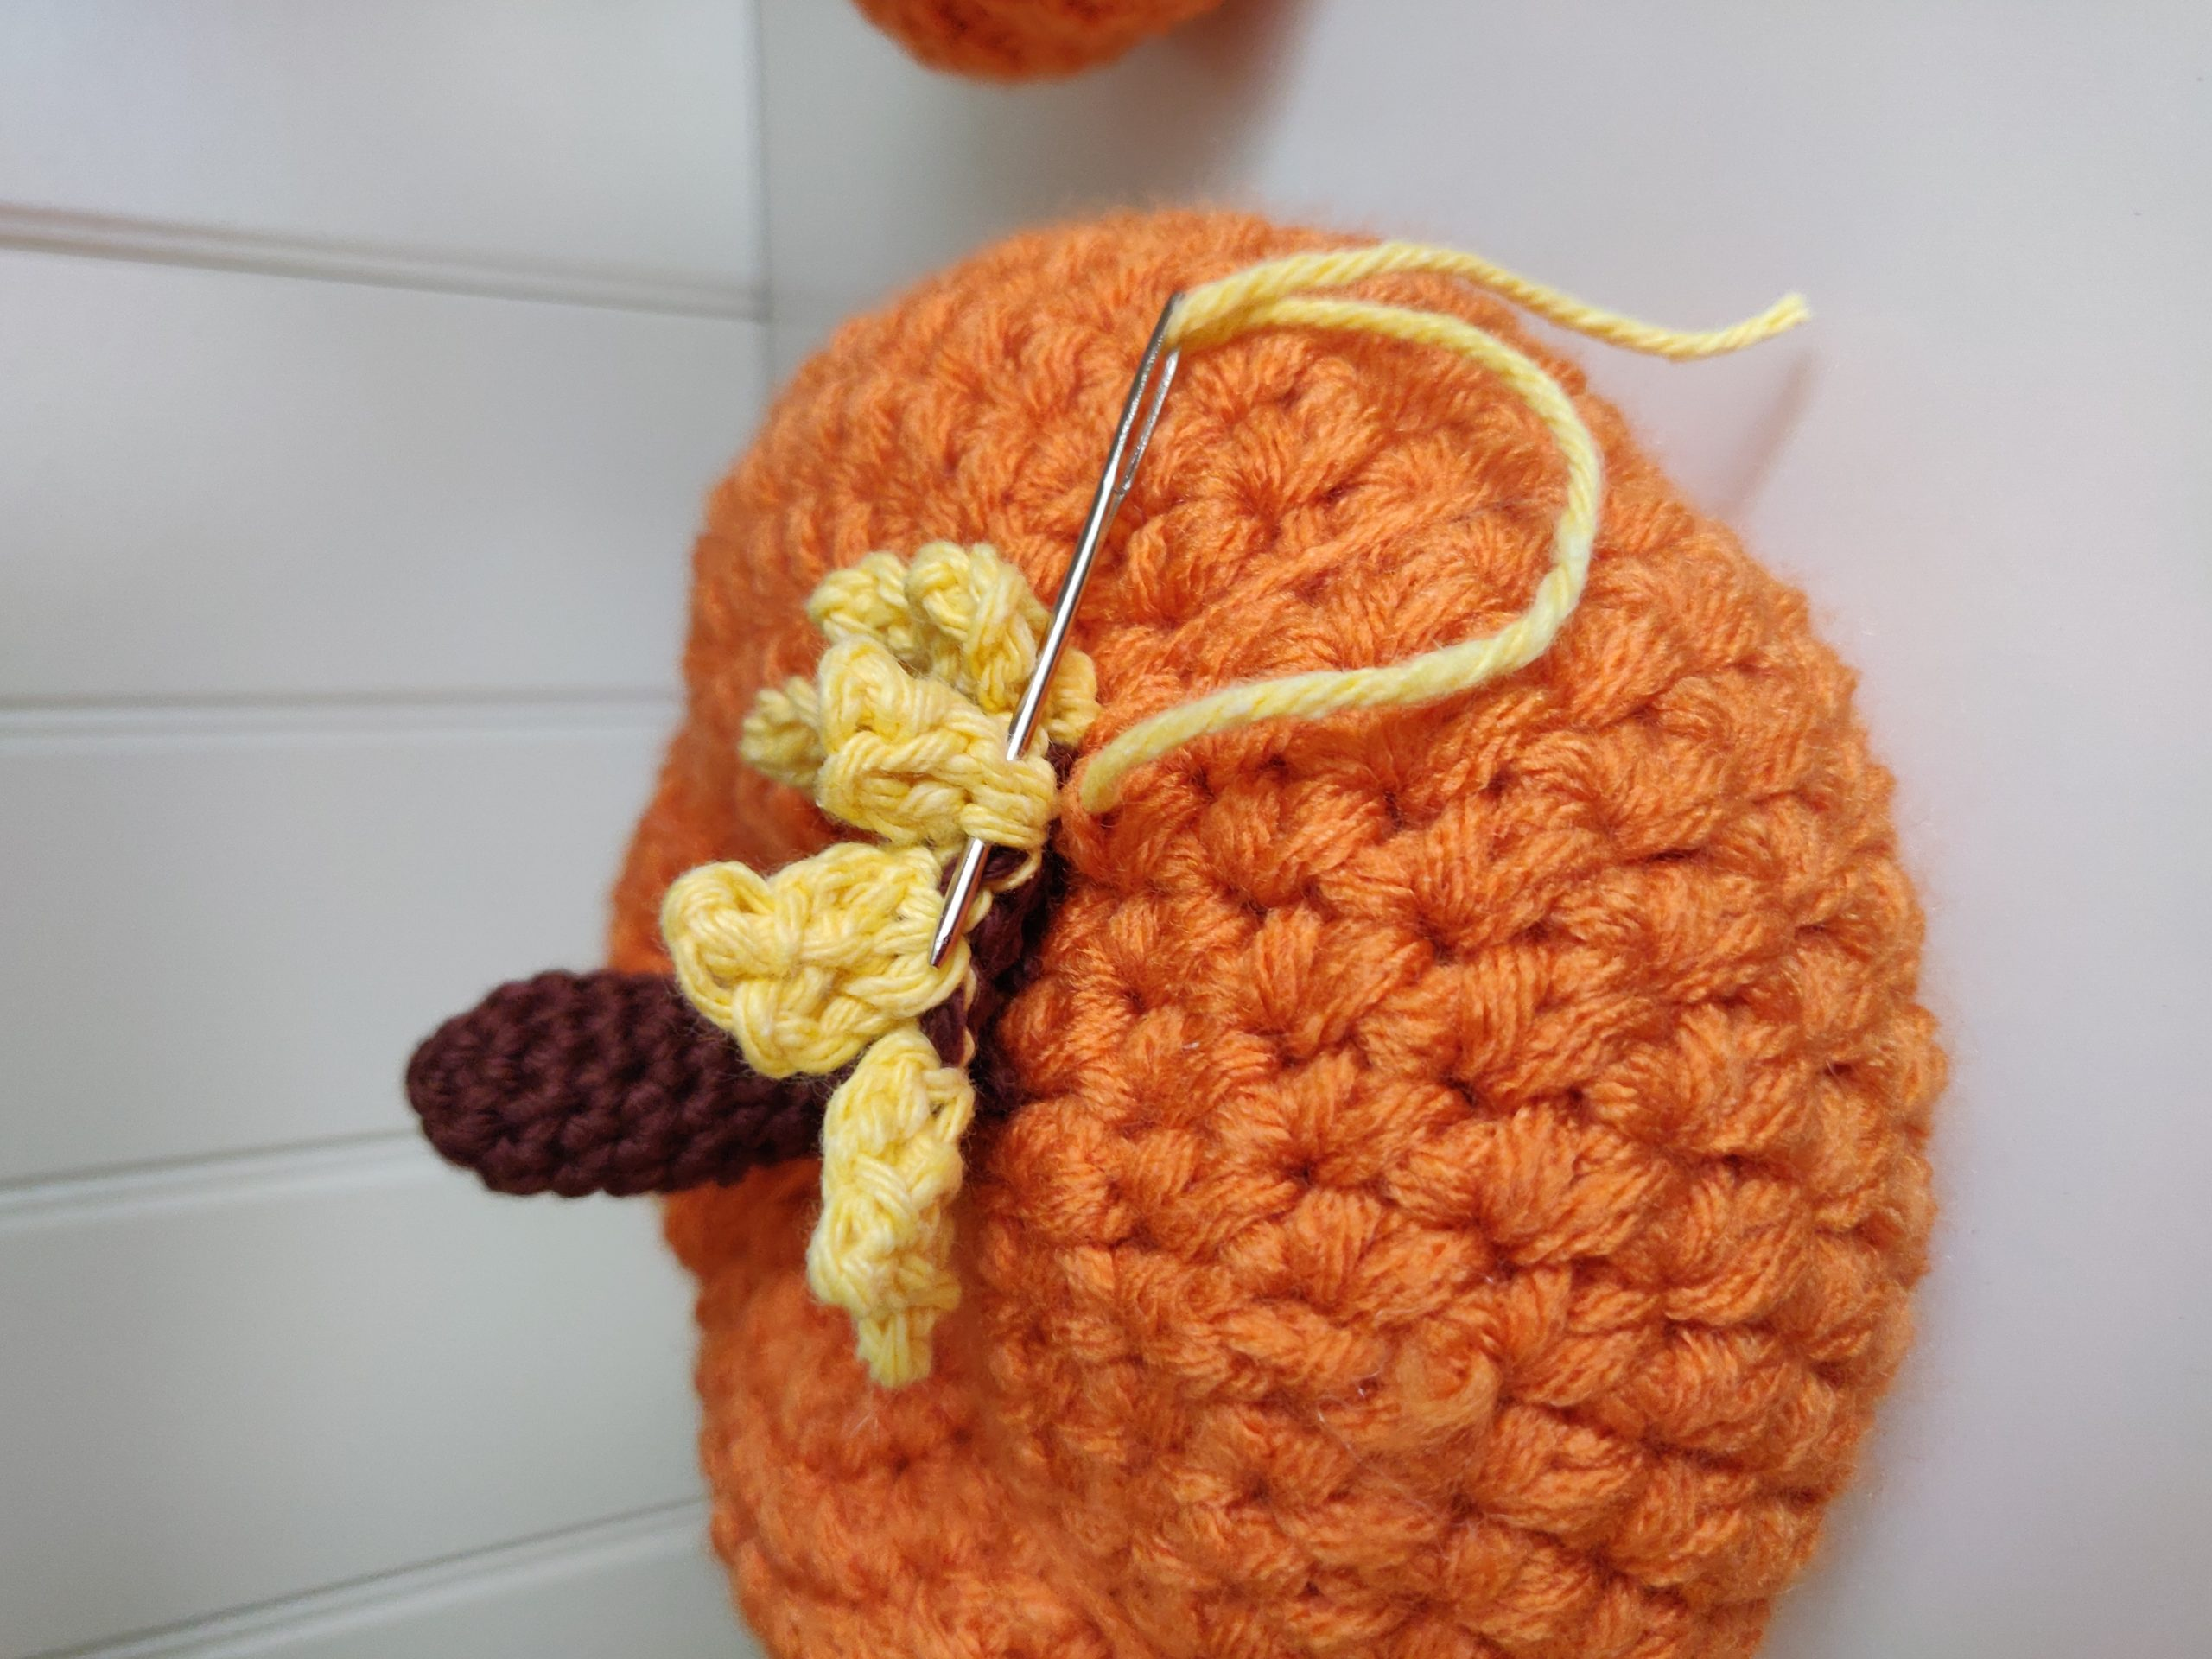 Crochet pumpkin with sunflower sewing on the flower on the pumpkin.